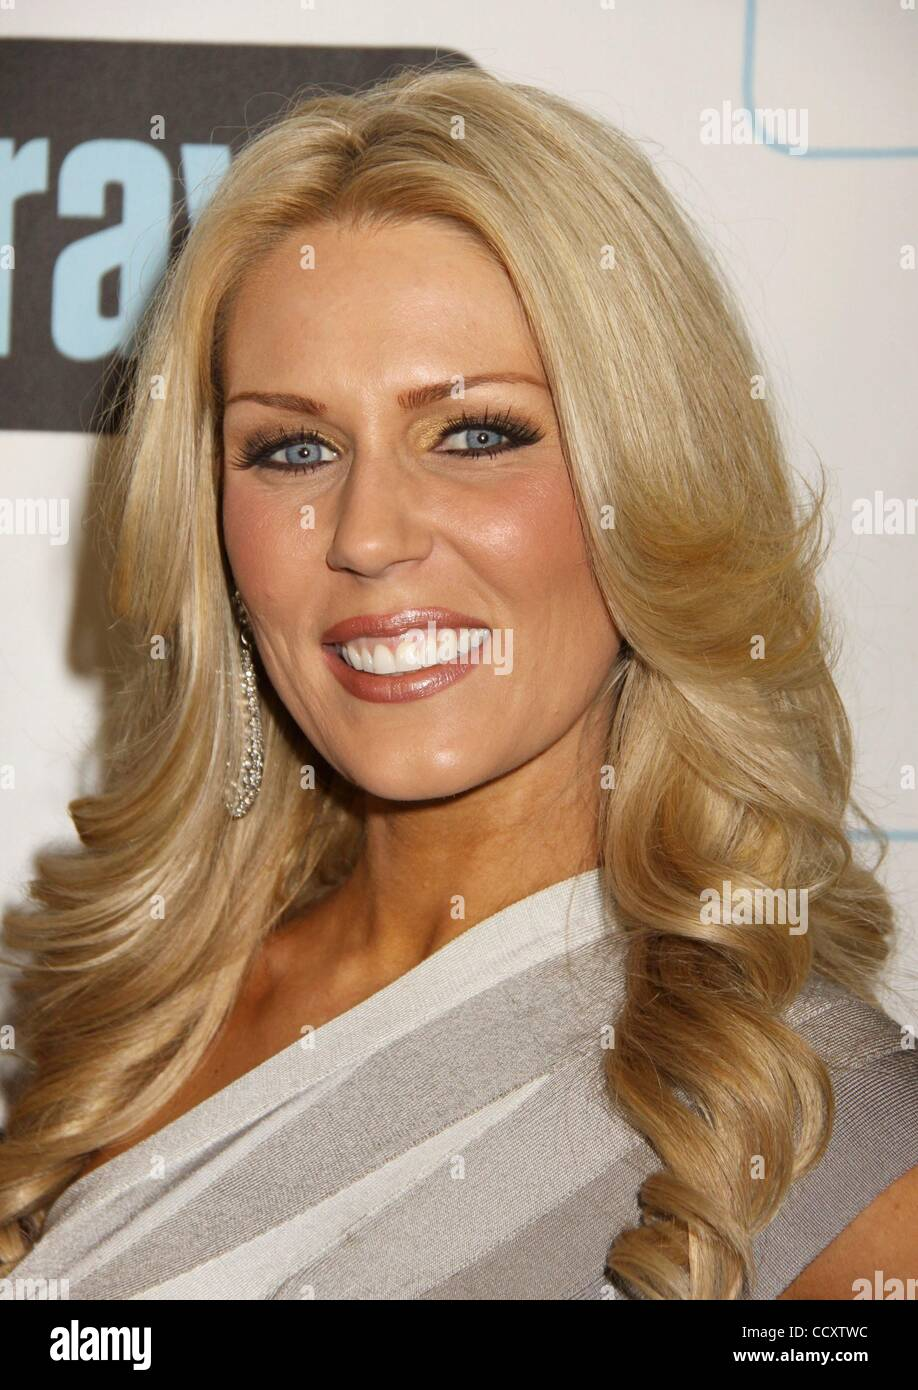 Gretchen Rossi Real Housewives Orange Stock Photos Gretchen Rossi